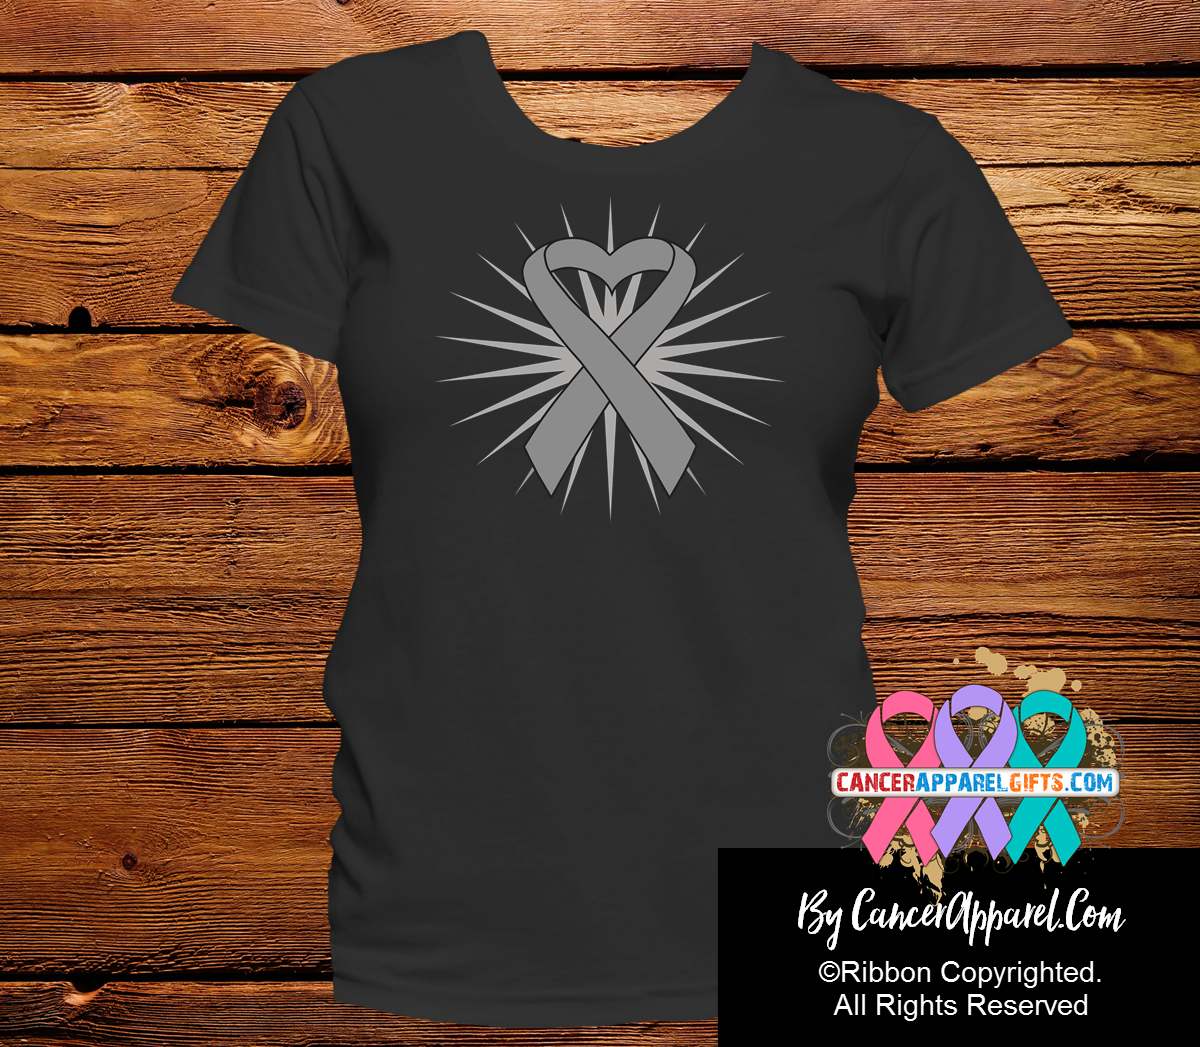 Brain Cancer Heart Ribbon Shirts - Cancer Apparel and Gifts